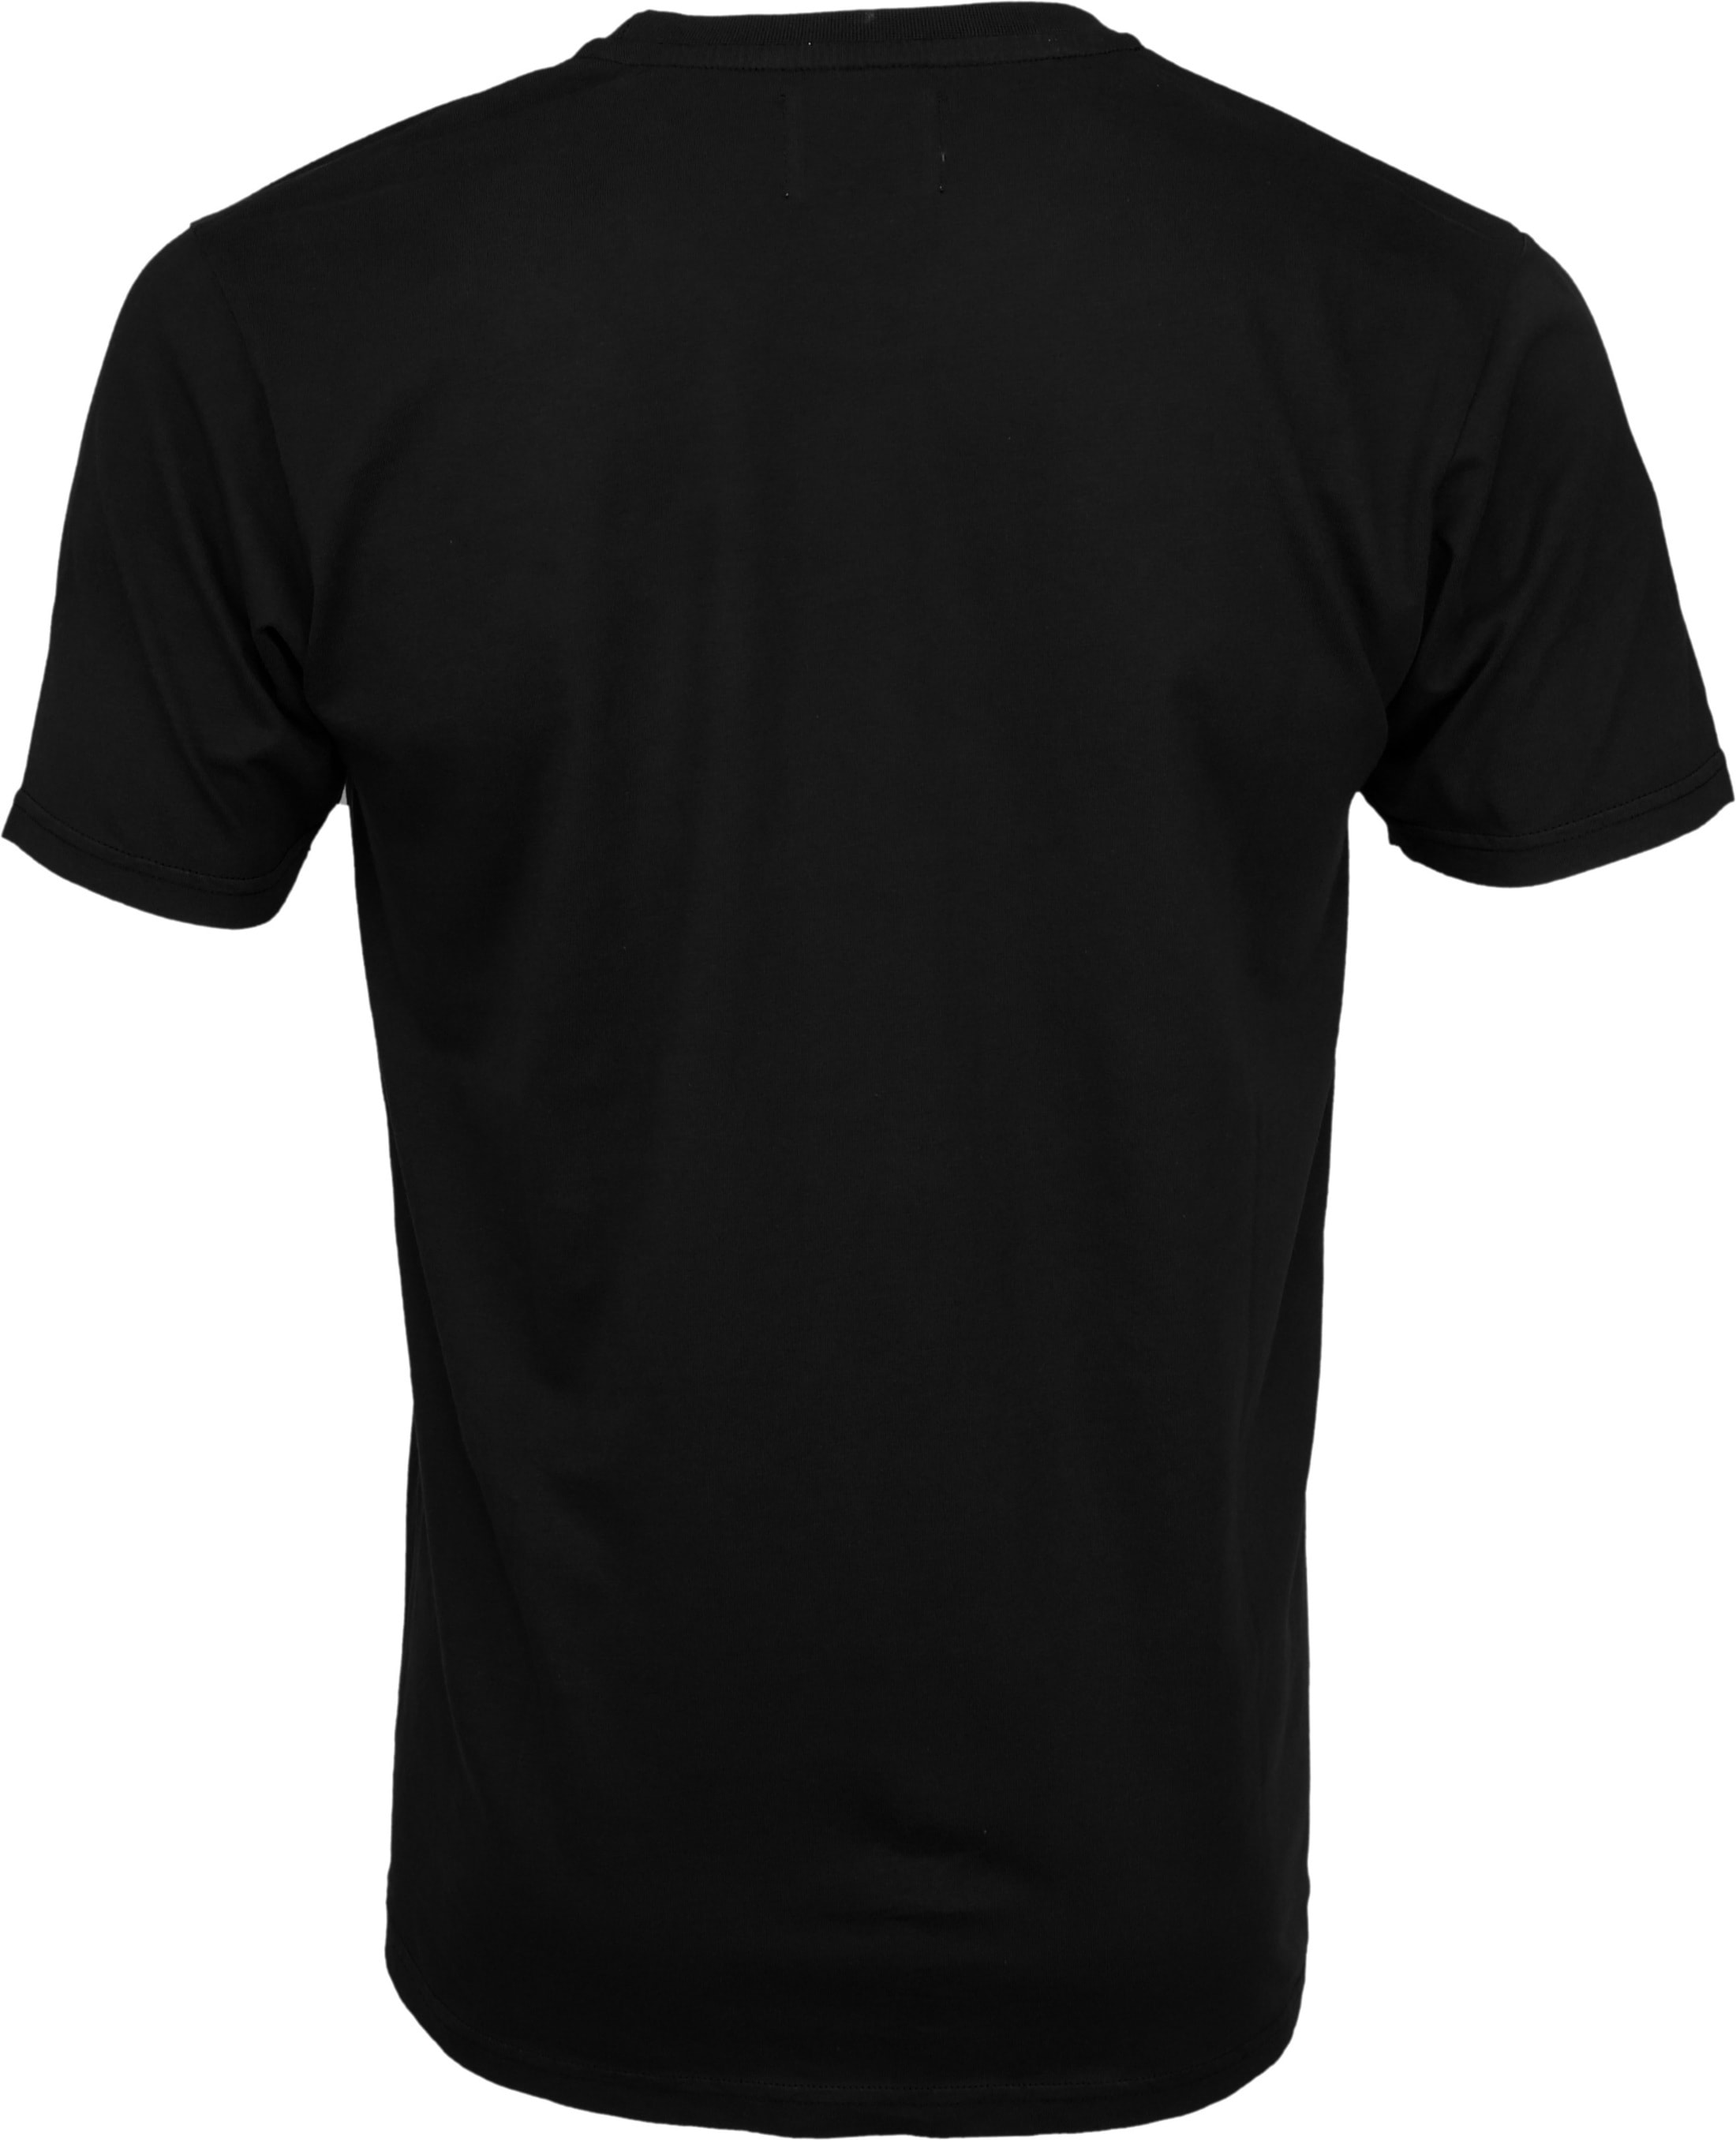 Colorful Standard T-shirt Deep Black foto 2